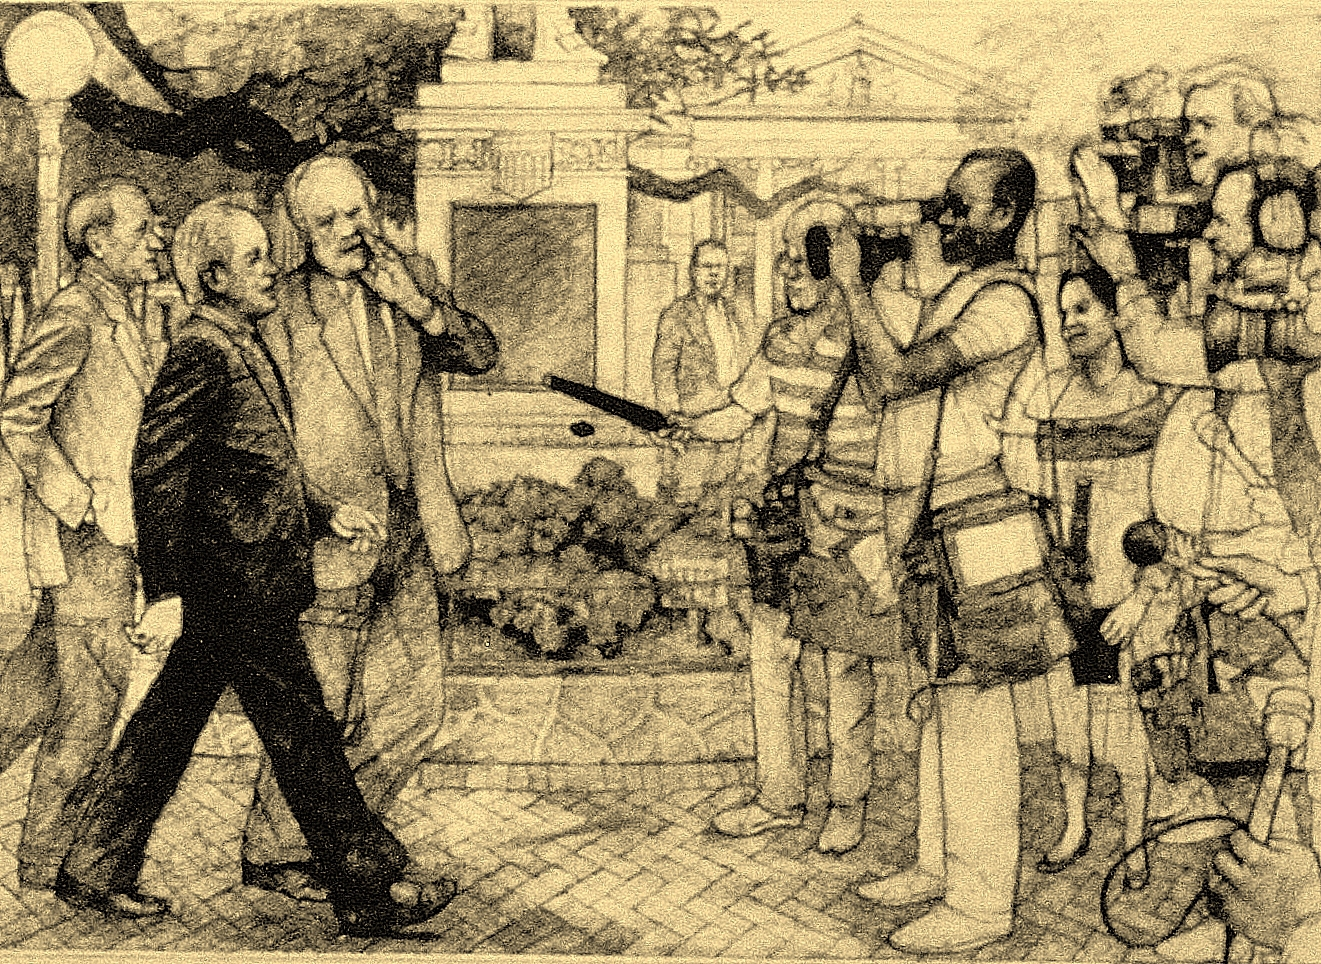 Edwin Edwards and his Lawyers :: Carbon pencil on rag paper